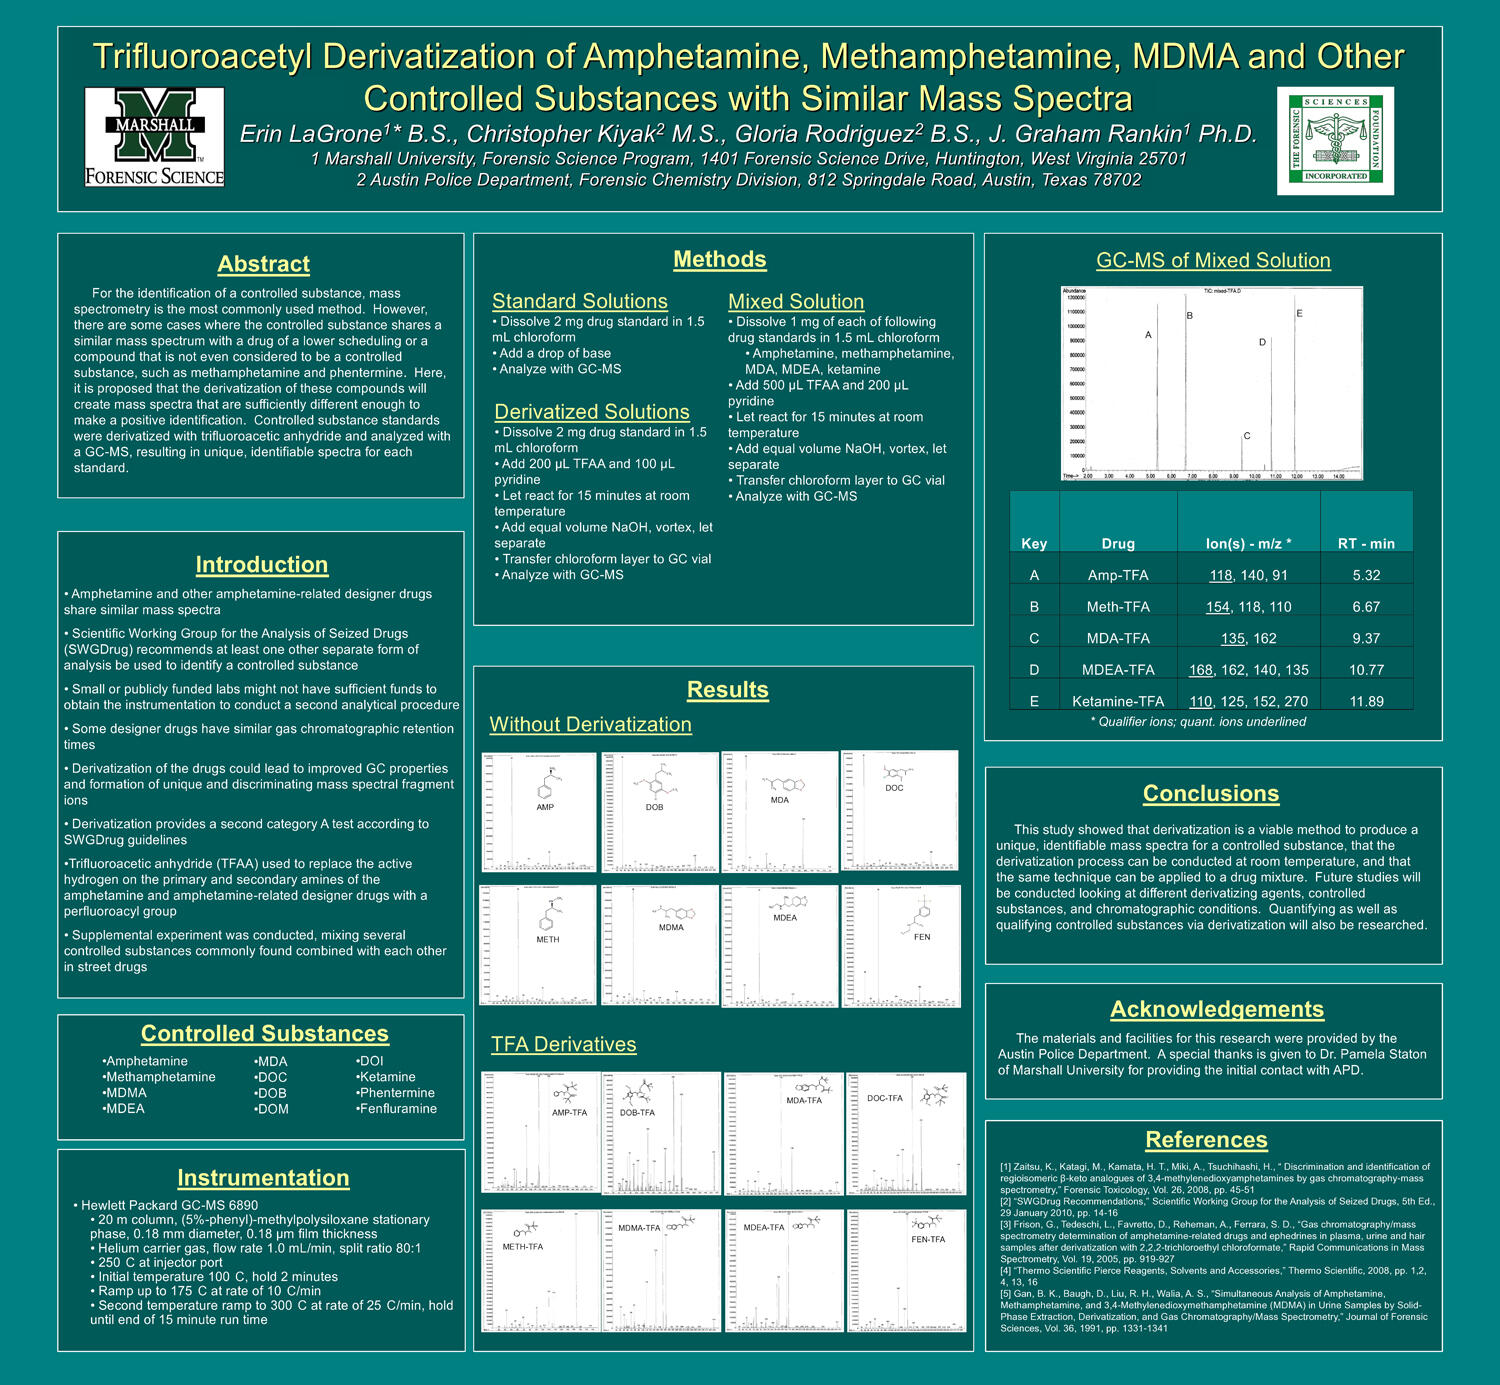 Trifluoroacetyl Derivatization of Amphetamine, Methamphetamine, MDMA and Other Controlled Substances with Similar Mass Spectra